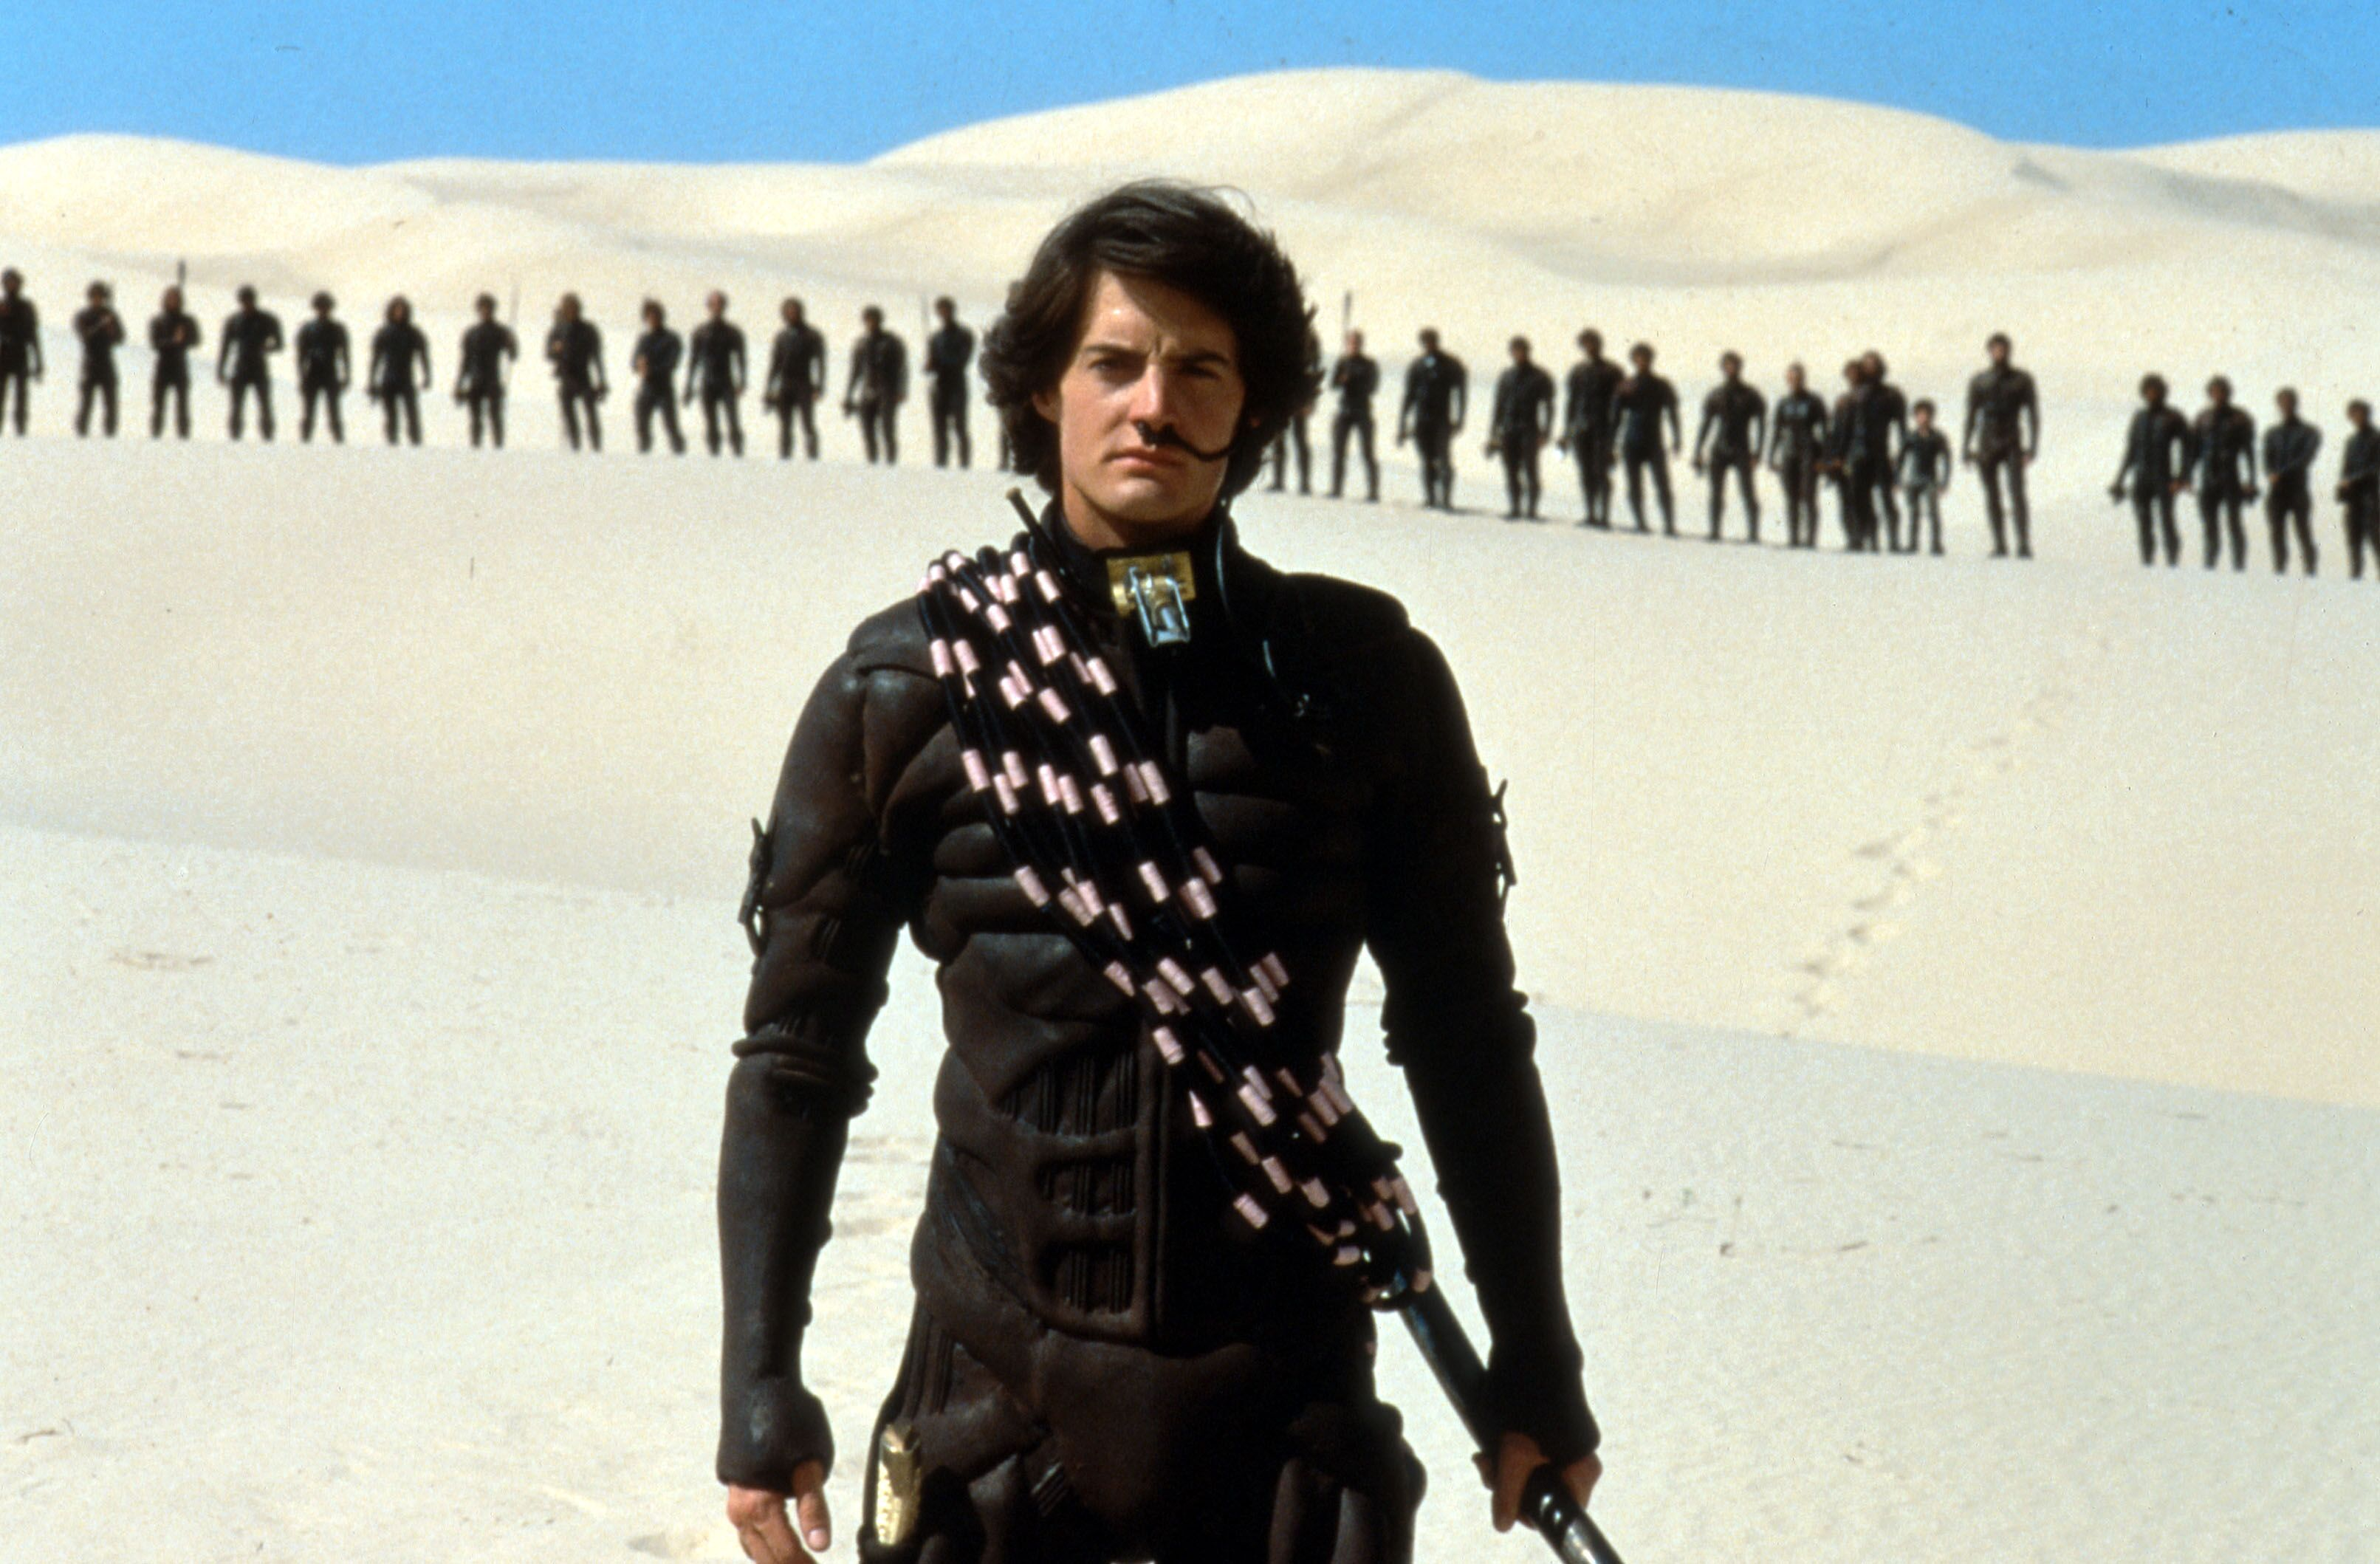 Kyle MacLachlan doesn't have a cameo in Denis Villeneuve's Dune movie